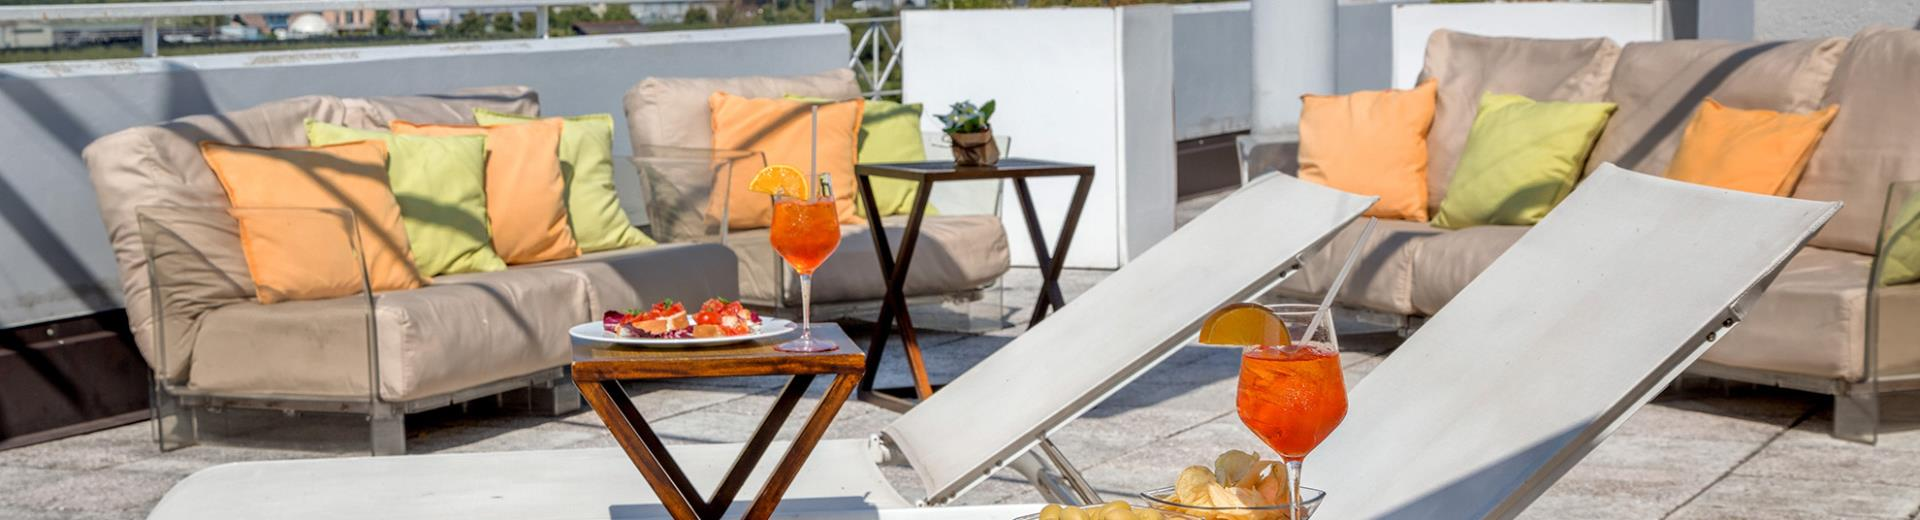 Relax in the wonderful panoramic terrace of 4-star BW Hotel Adige, just a few minutes distance from Trento city center: enjoy the peace and the beautiful landscape!